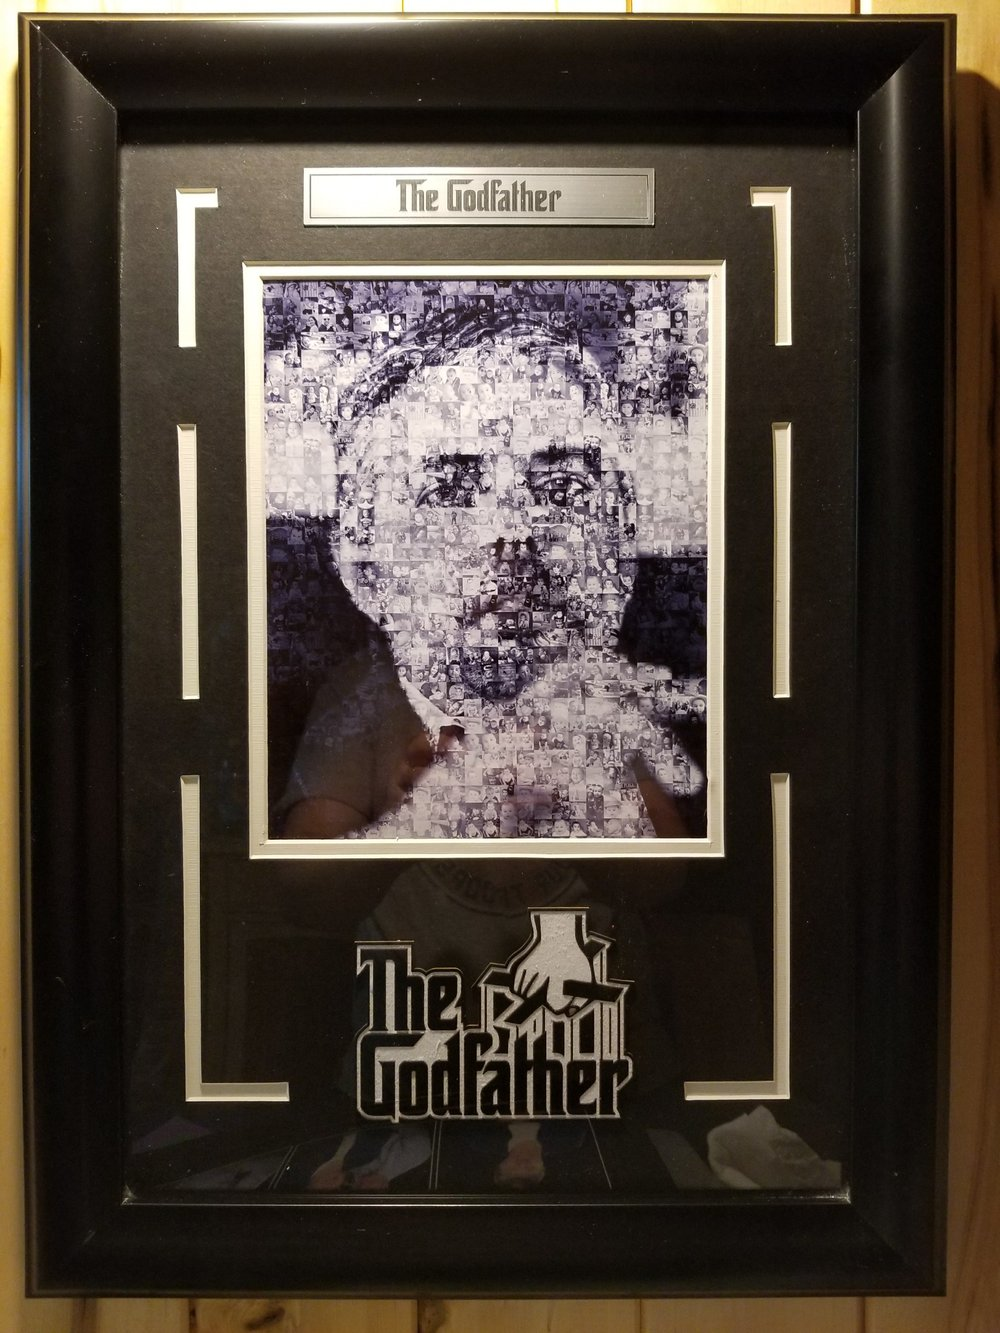 Matted and framed Godfather photo mosaic